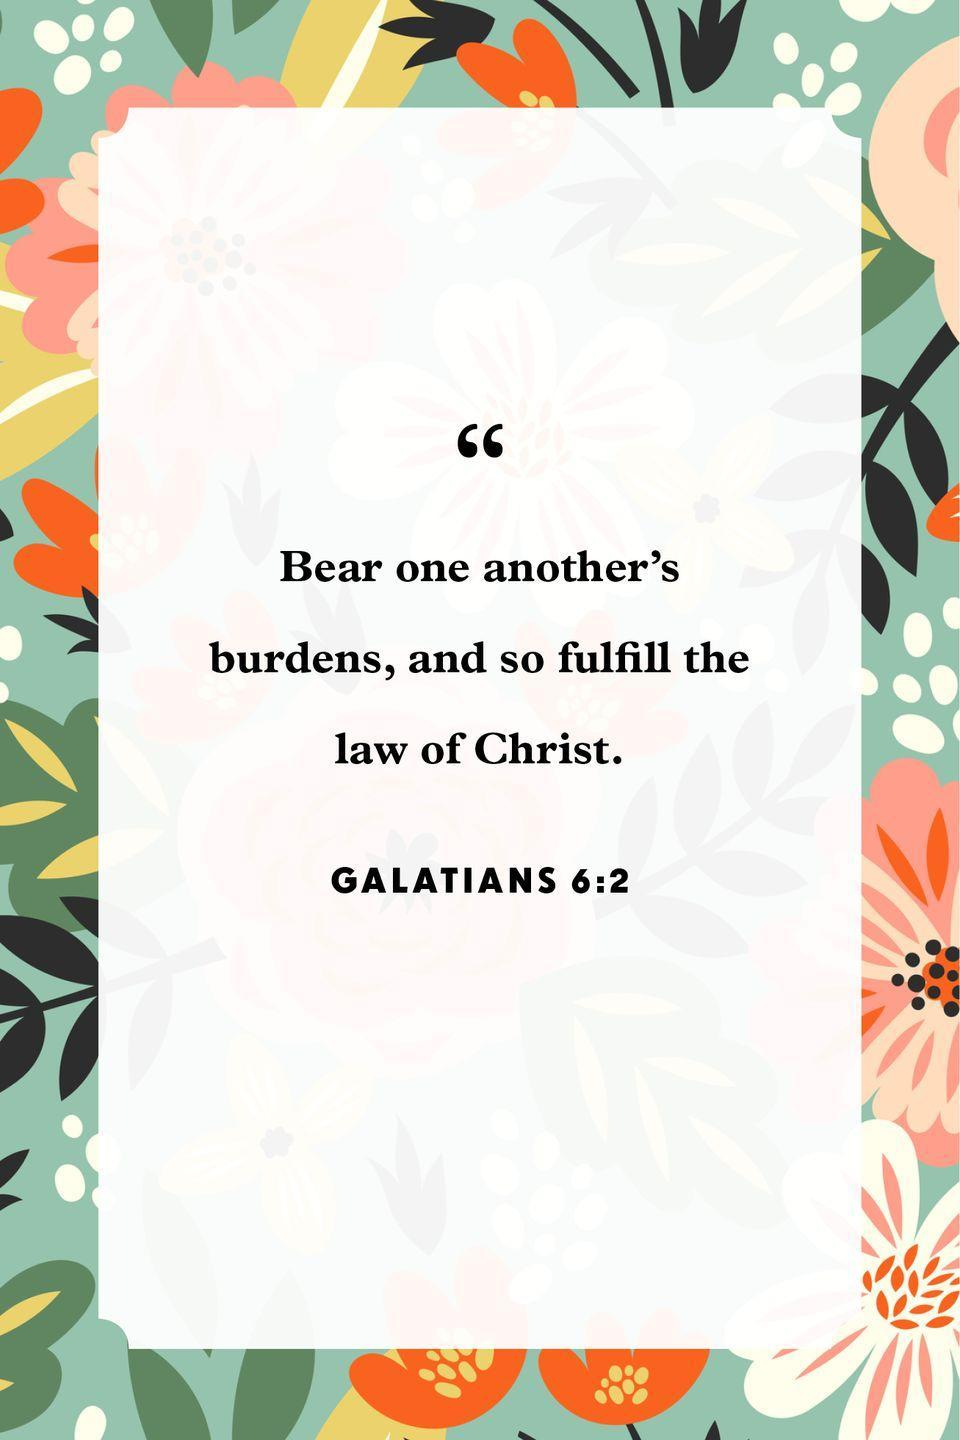 "<p>""Bear one another's burdens, and so fulfill the law of Christ.""</p>"